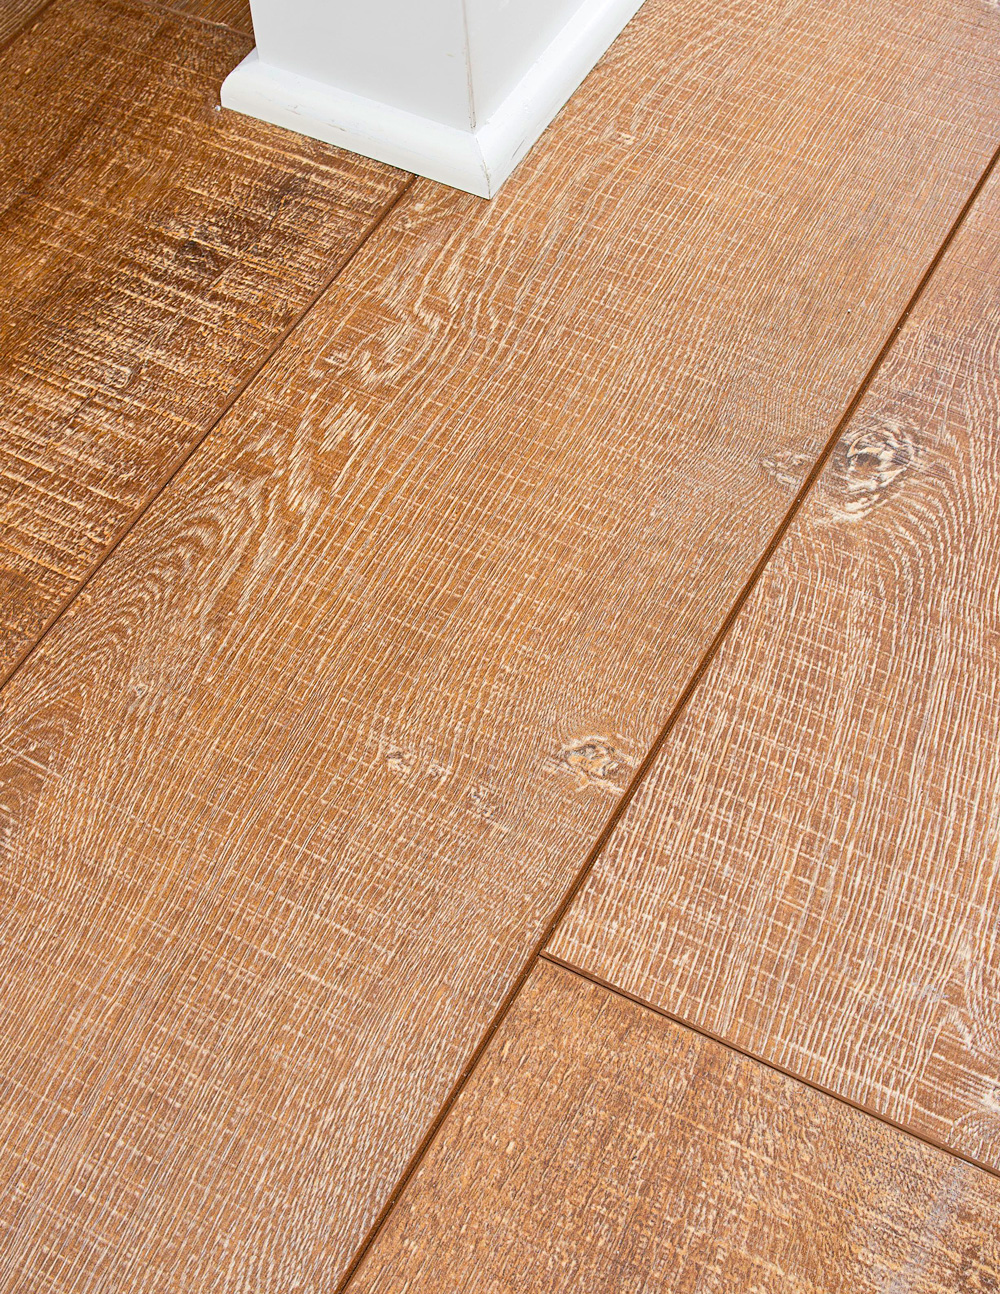 Wood-look floors